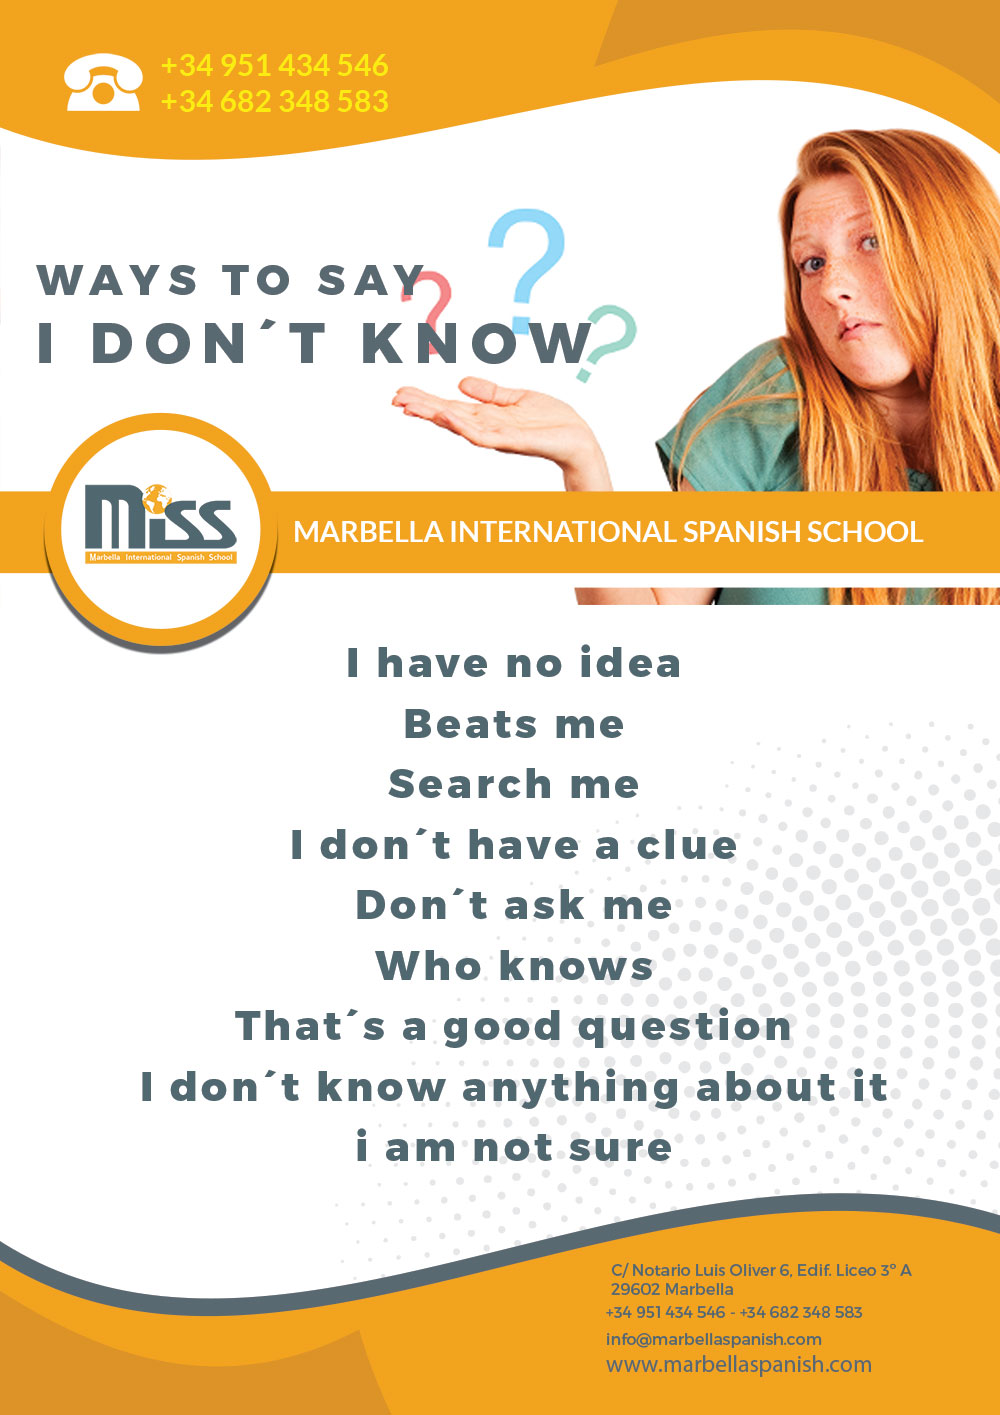 marbella-international-spanish-school-learn-english